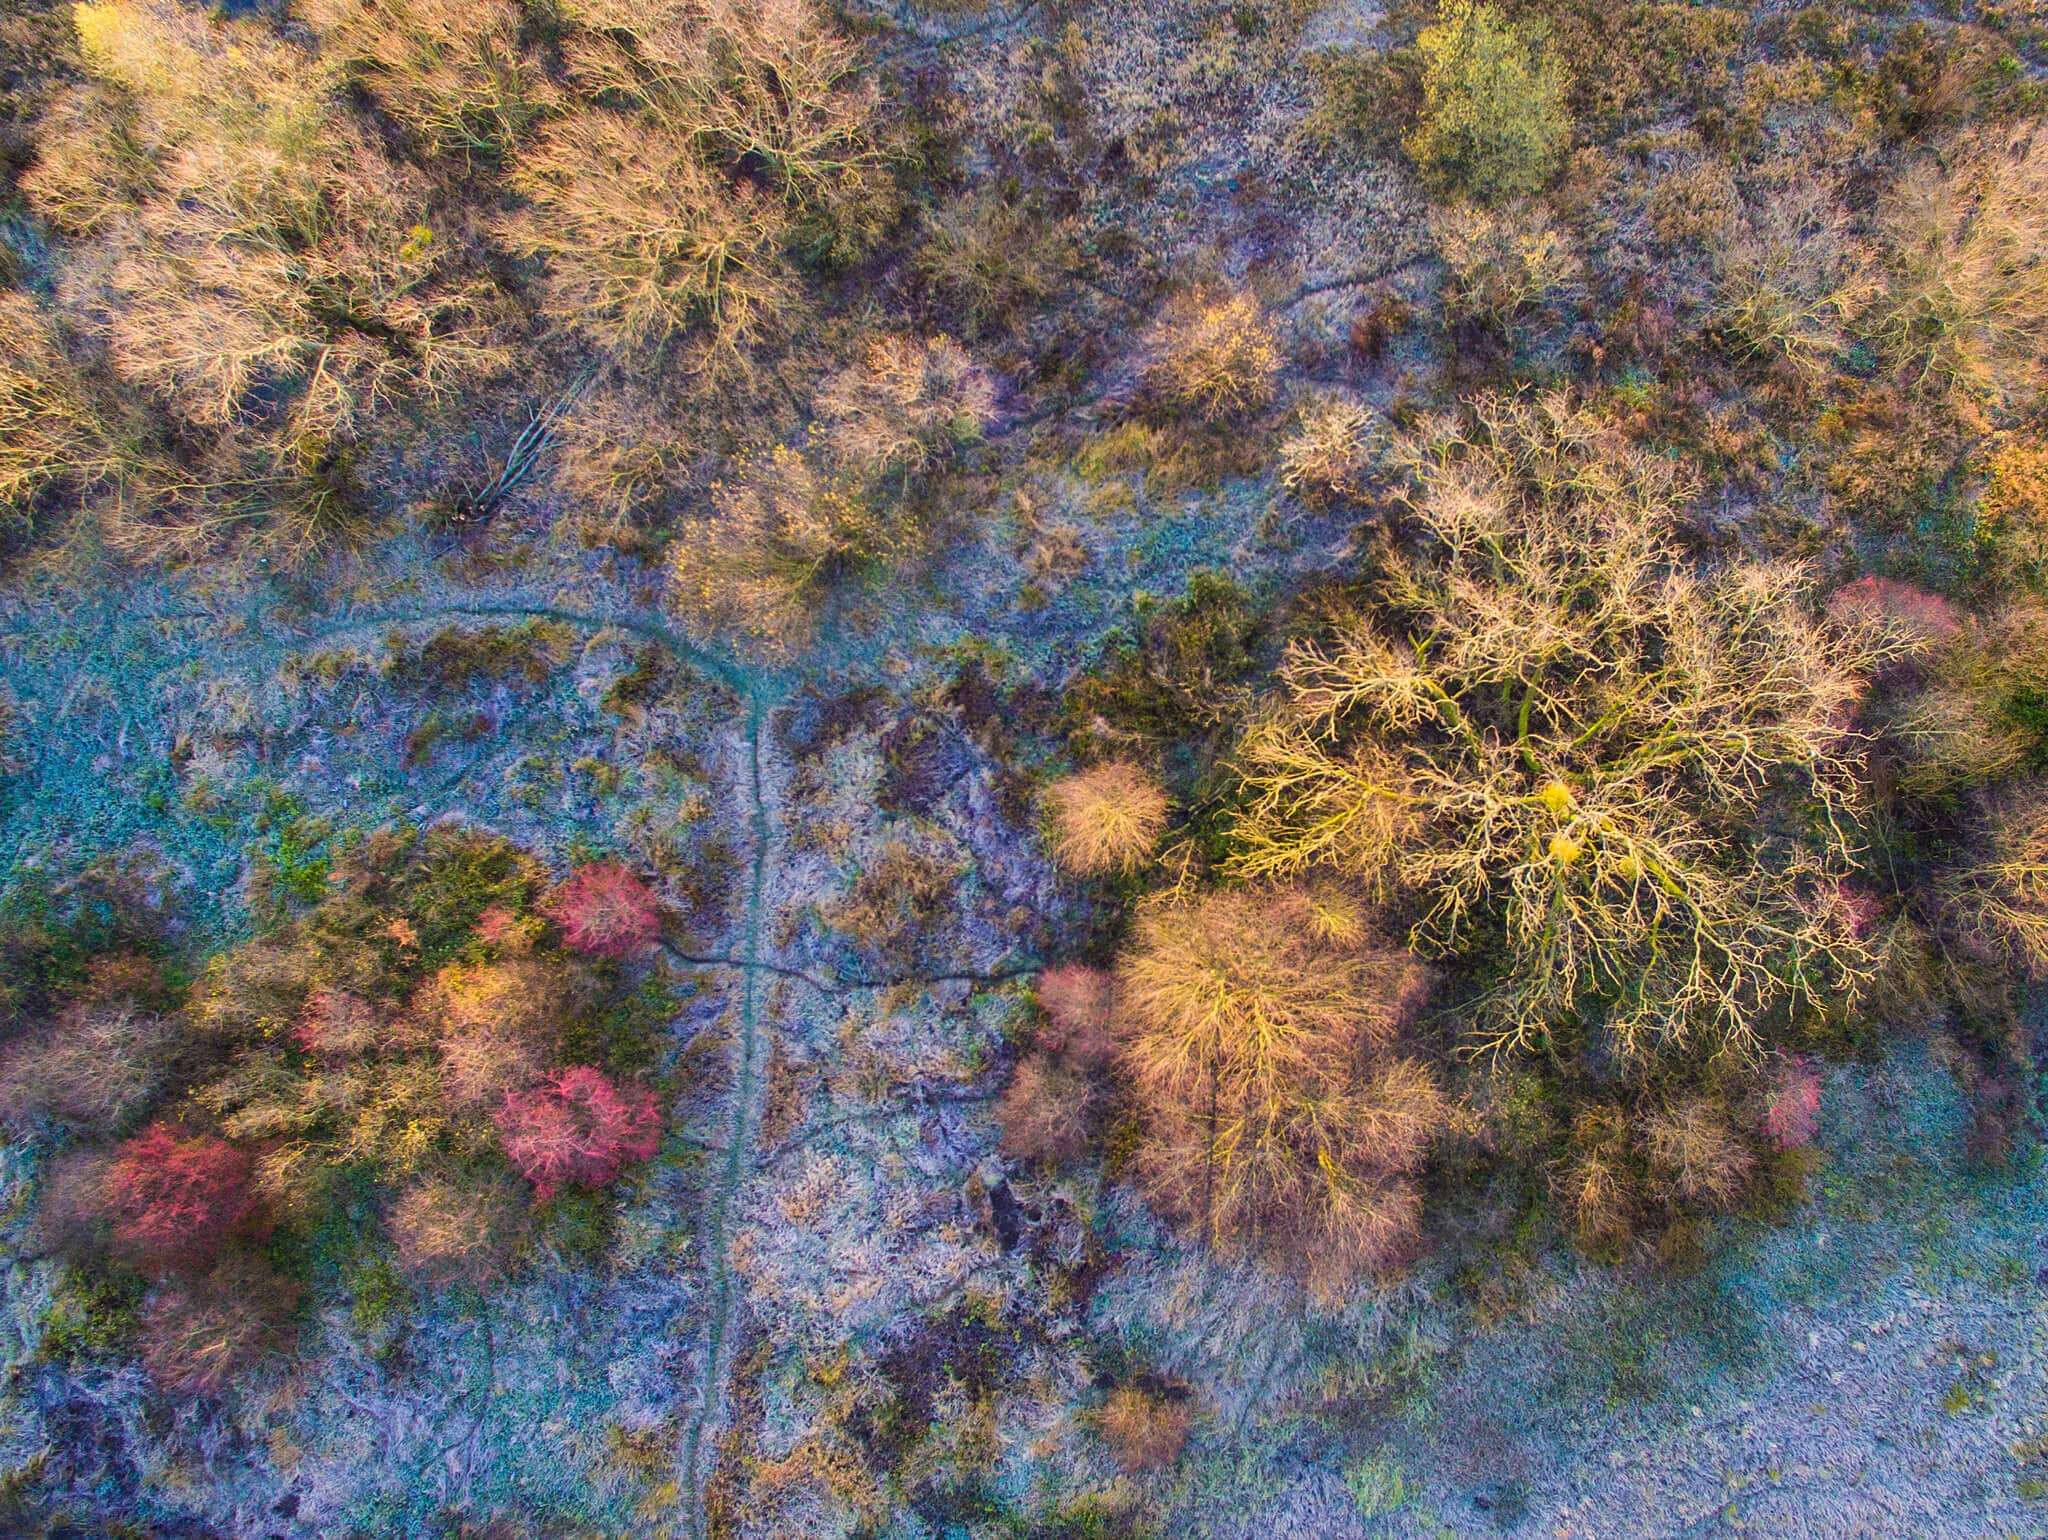 drone photography capture